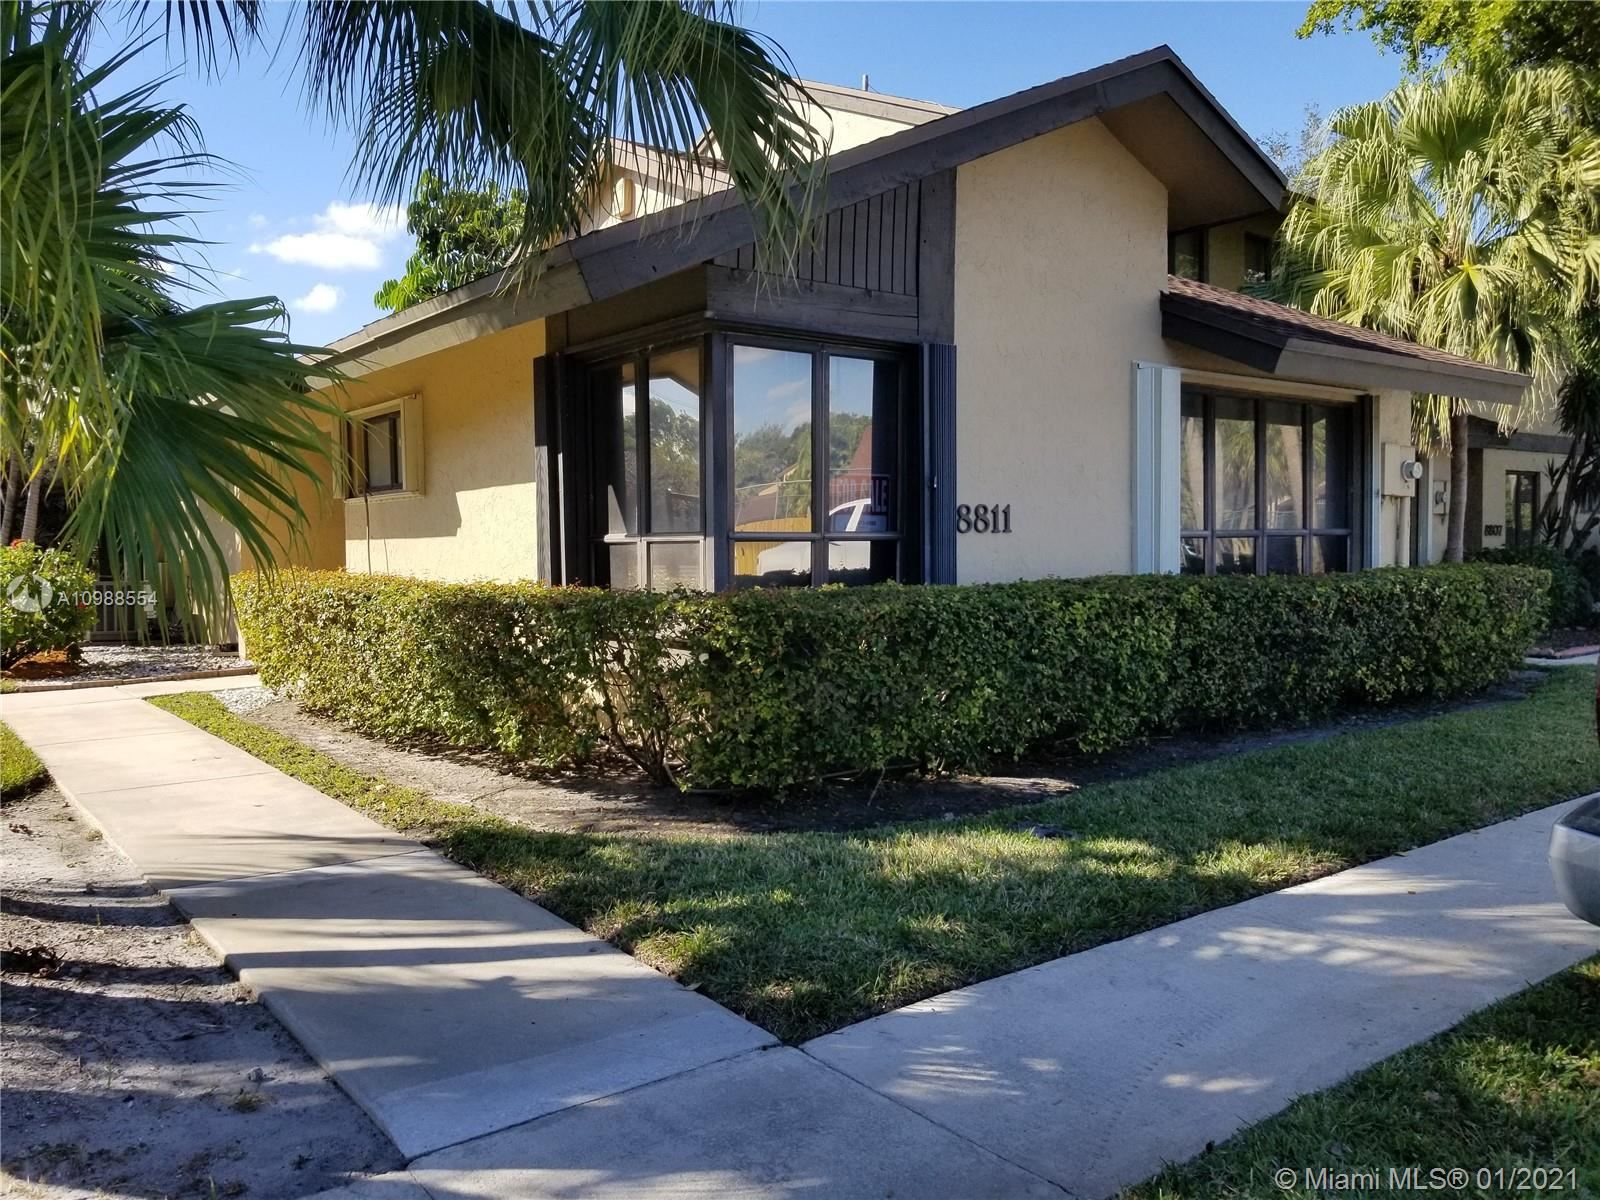 8811 Cleary Blvd, Plantation, FL 33324 - #: A10988554